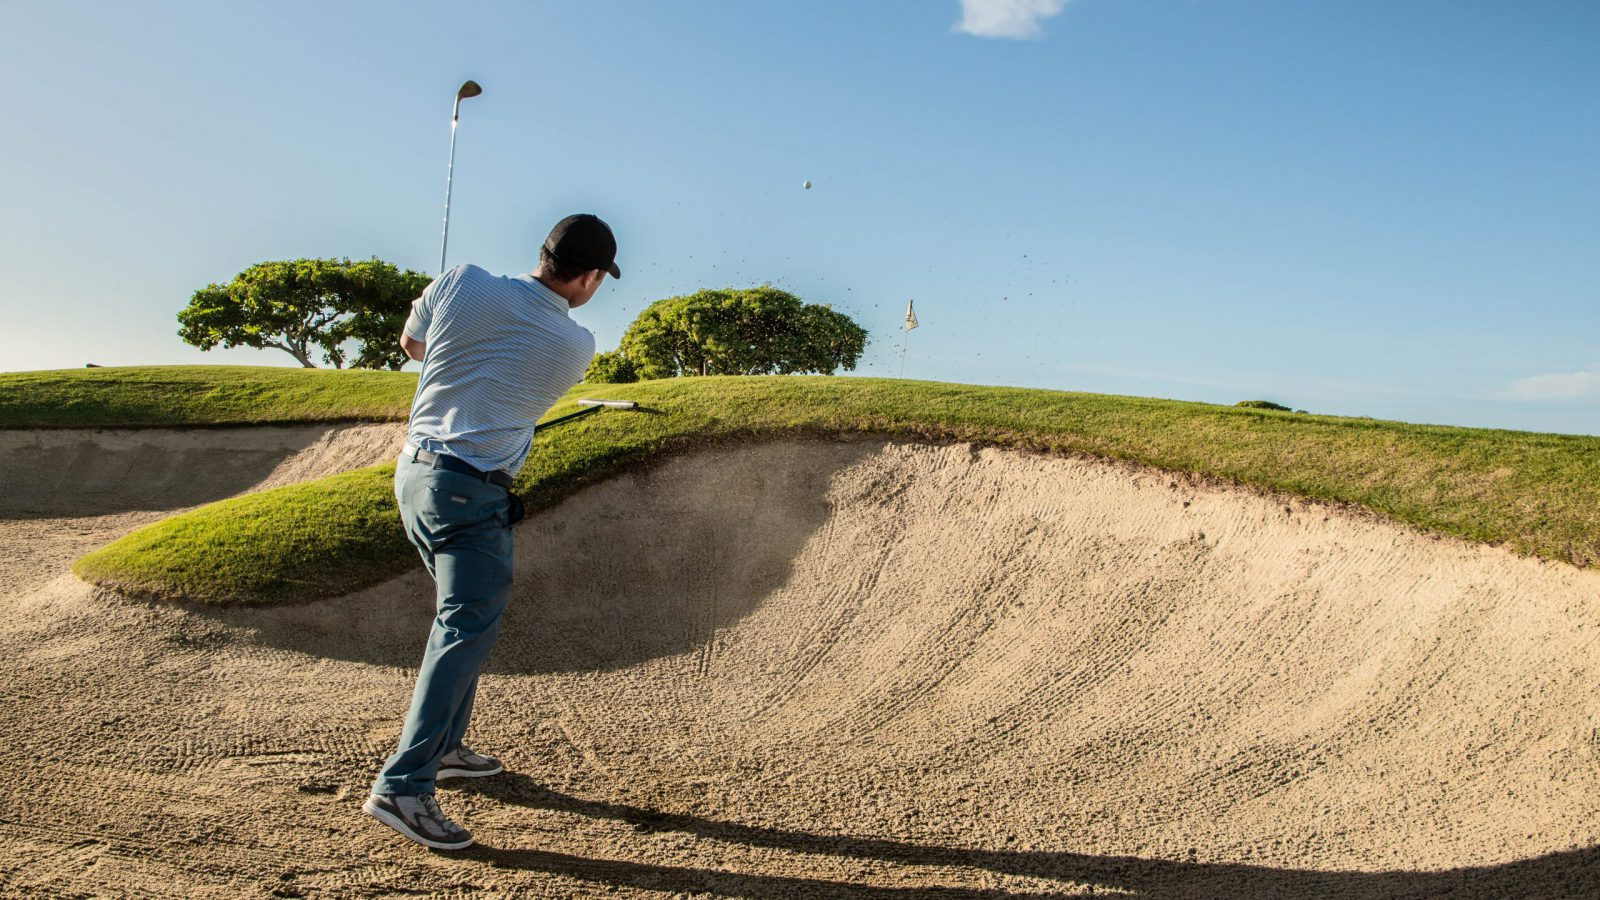 Golf pro Garratt Okamura hits ball out of sand trap on course